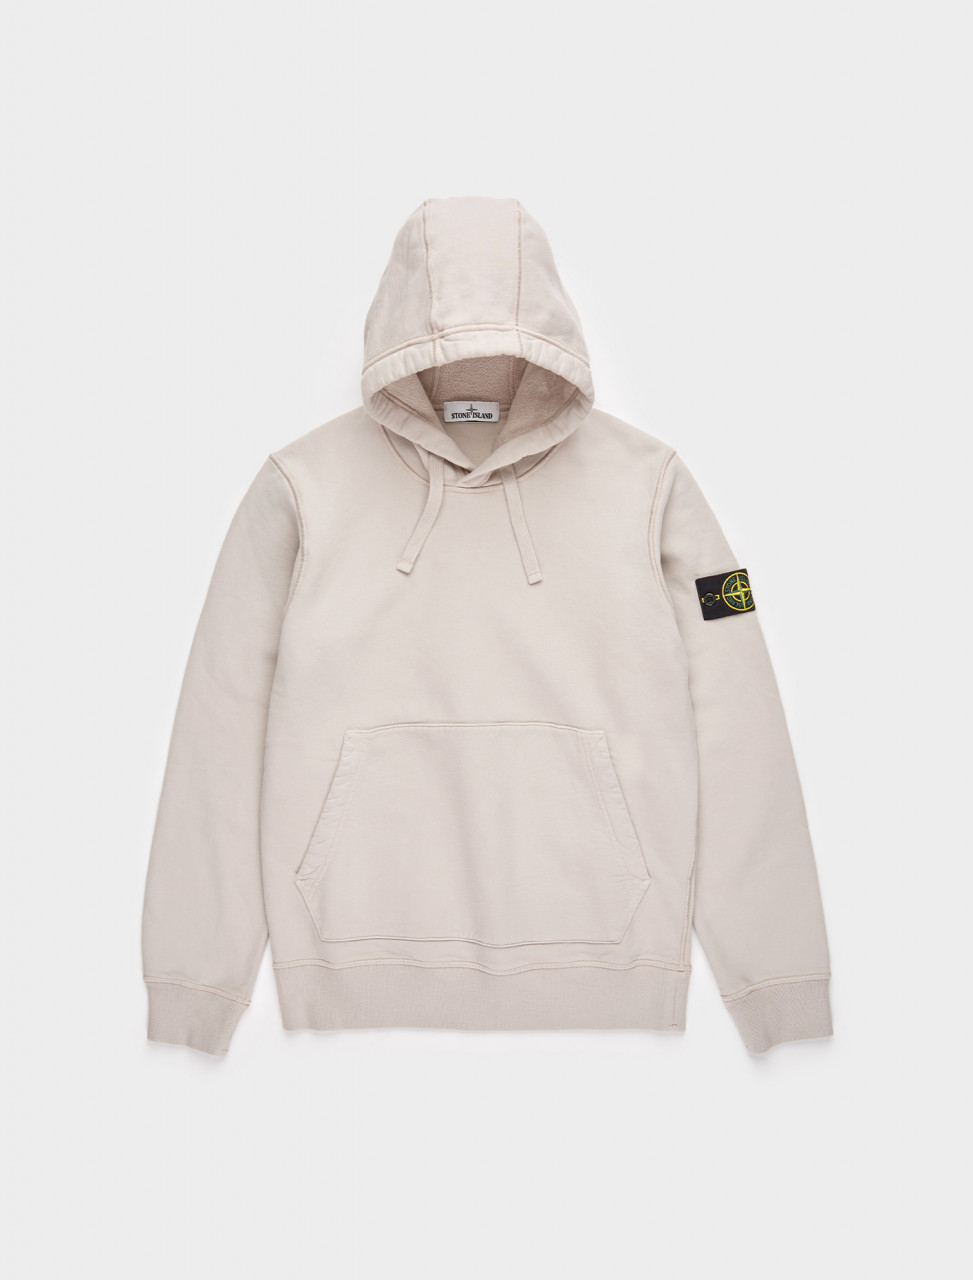 241-MO731564120-V0092 STONE ISLAND HOODED SWEATSHIRT IN DOVE GREY